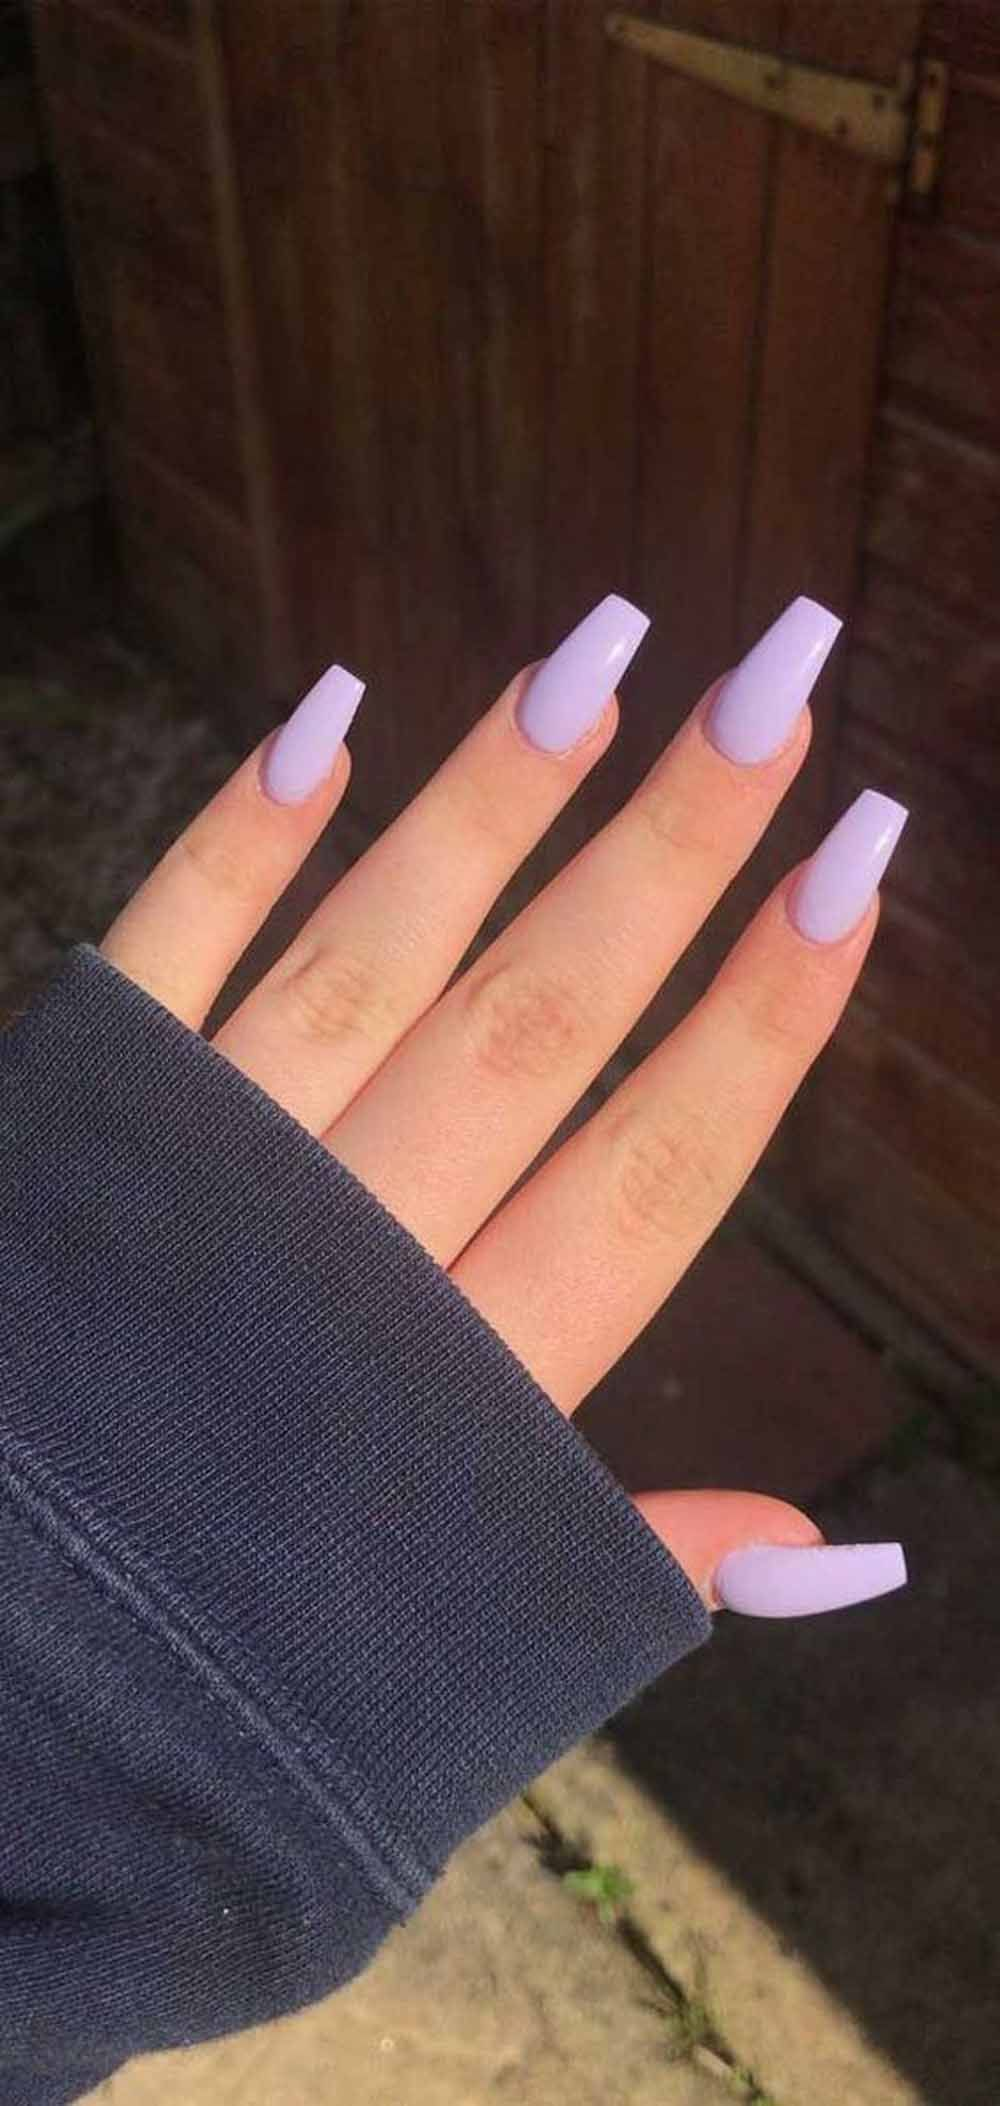 11 Pretty Pastel Color Acrylic Spring Nail Designs To Apply Acrylic Apply Celebritystyle In 2020 Wedding Acrylic Nails Pretty Acrylic Nails Best Acrylic Nails